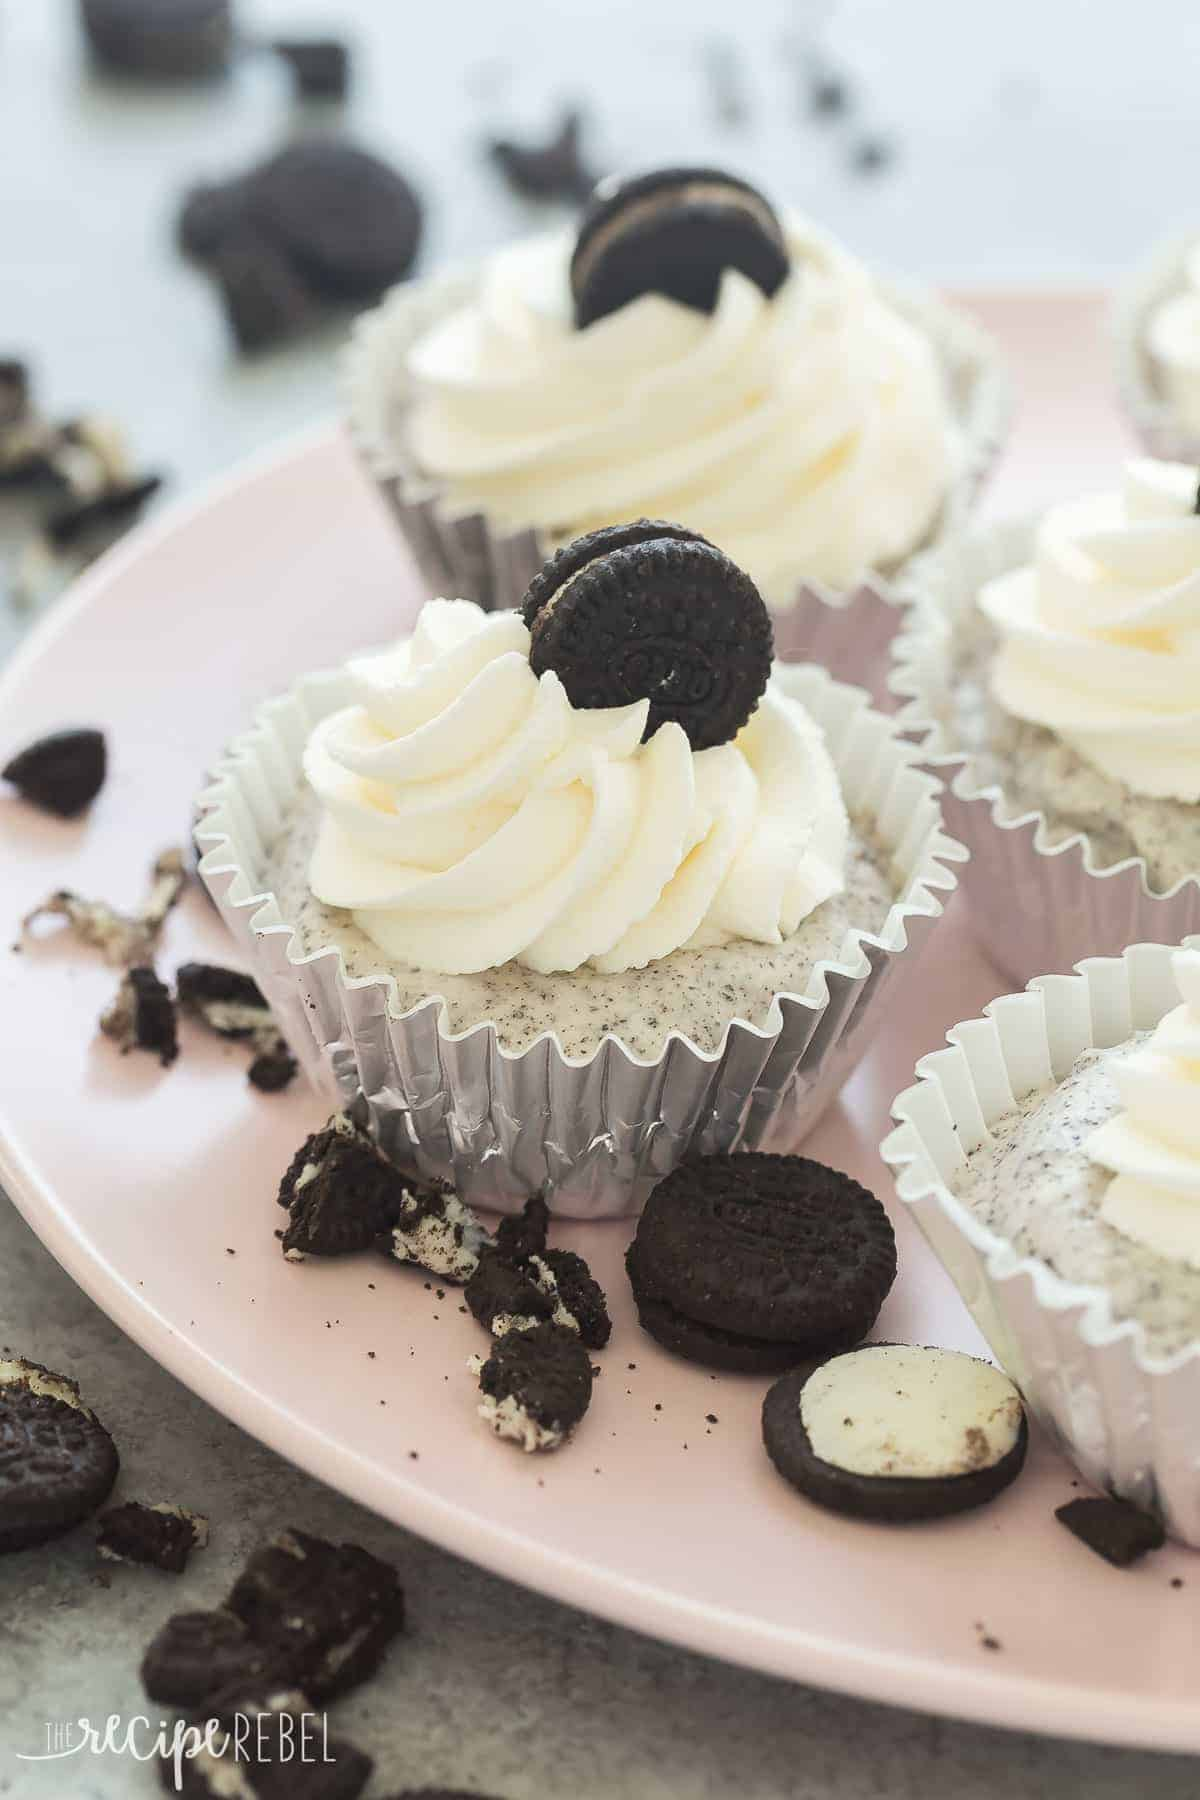 These No Churn Oreo Ice Cream Cupcakes are an easy, 4 INGREDIENT, no bake summer treat that's perfect for a party! Switch up the cookie flavors for your favorites, or use gluten-free sandwich cookies for an allergy-friendly dessert. Includes how to recipe video | no bake dessert | easy recipe